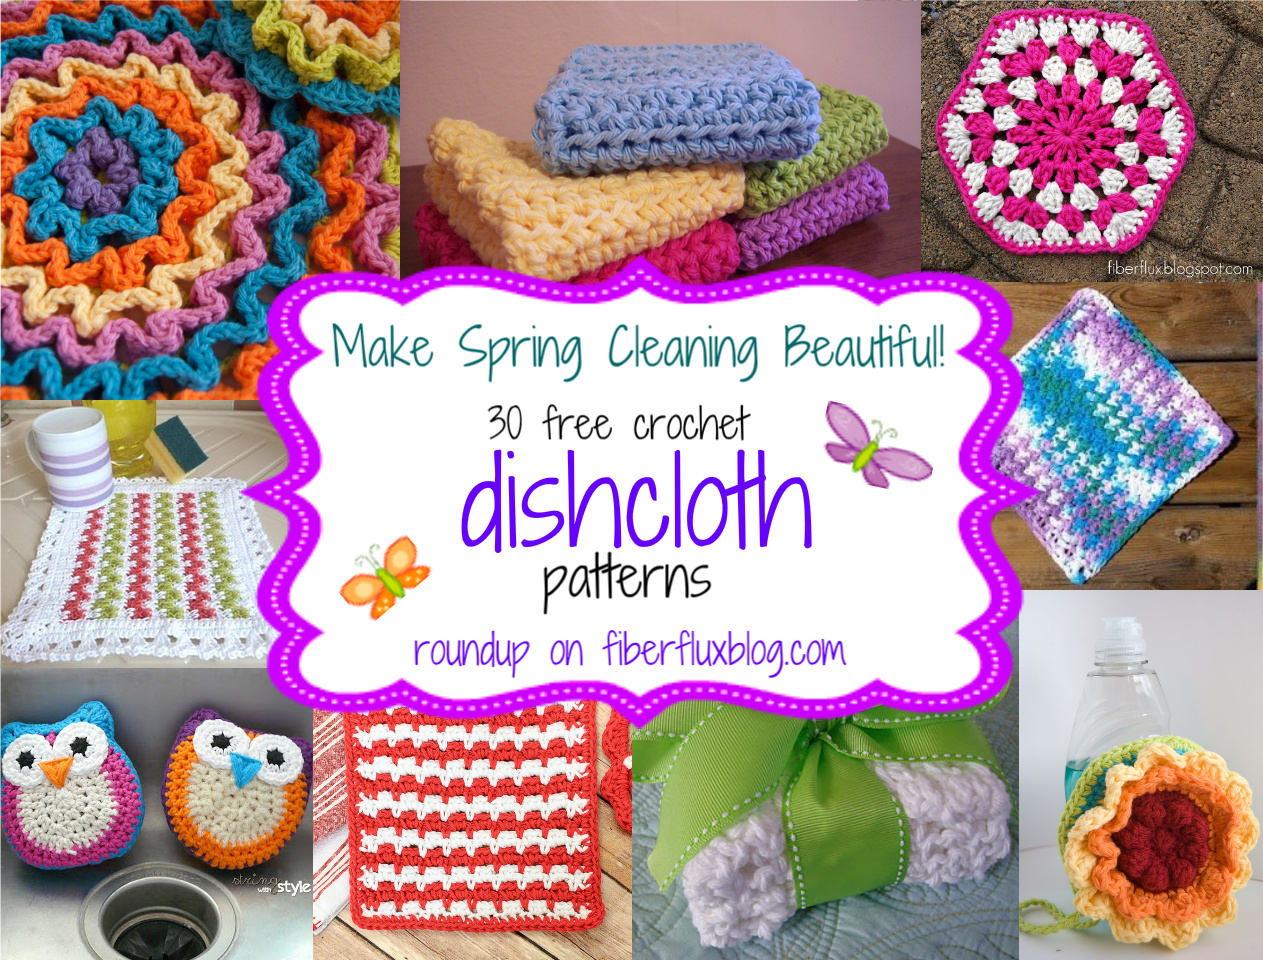 30 free crochet dishcloth patterns! CHTTAEK